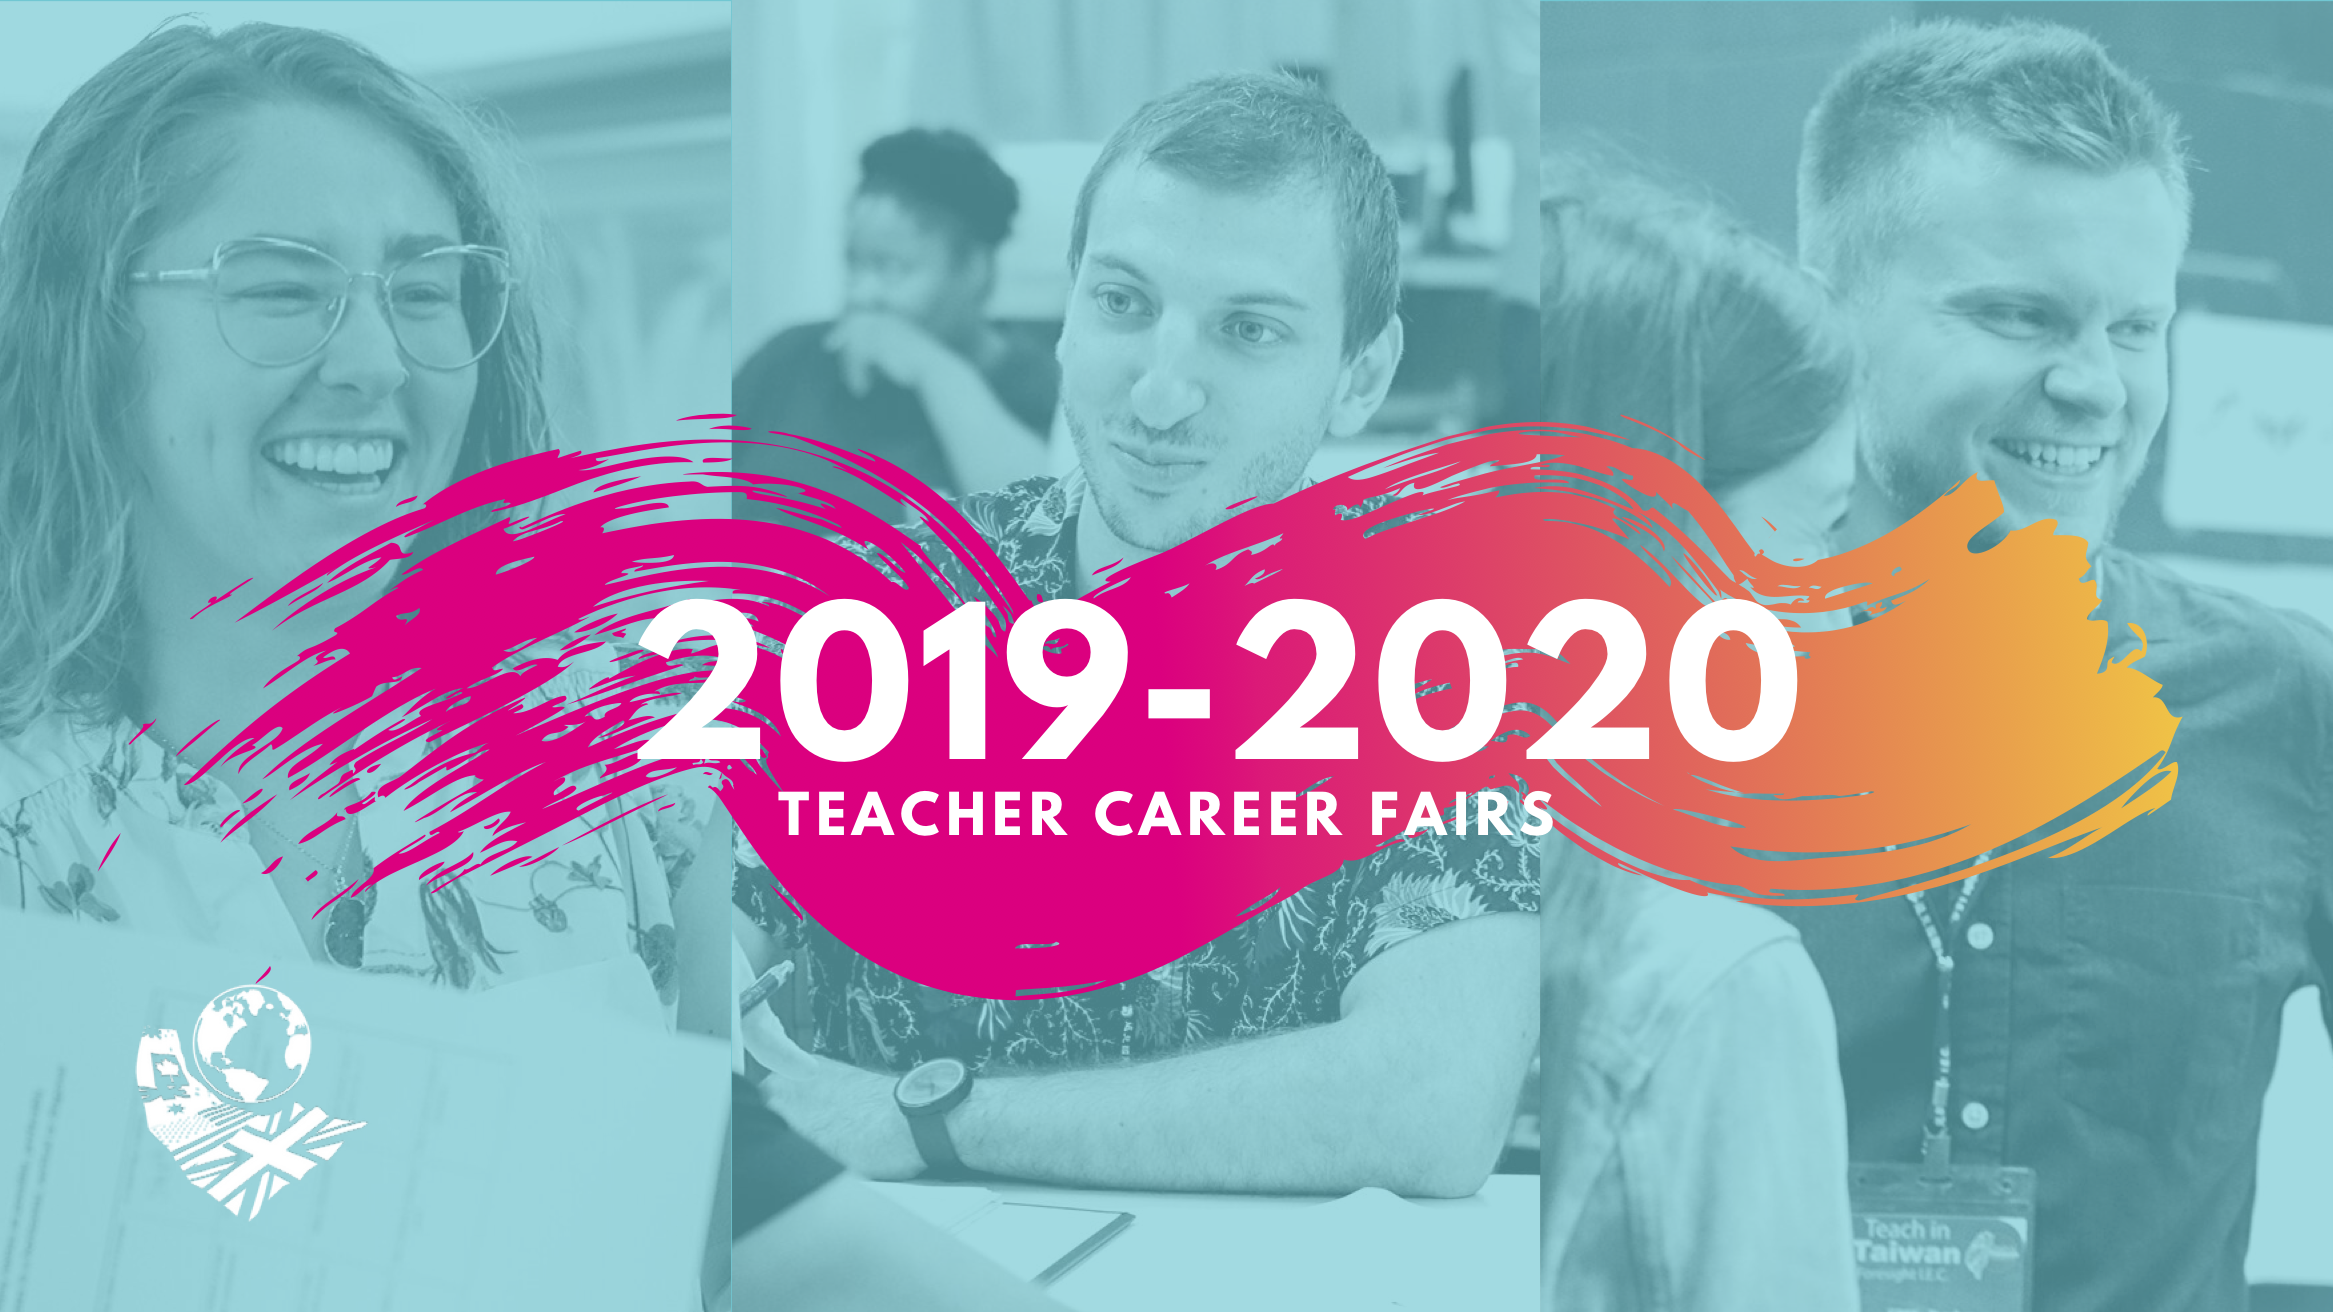 Career Fair Near Me 2020.Teach In Taiwan 2019 2020 Teacher Career Fairs